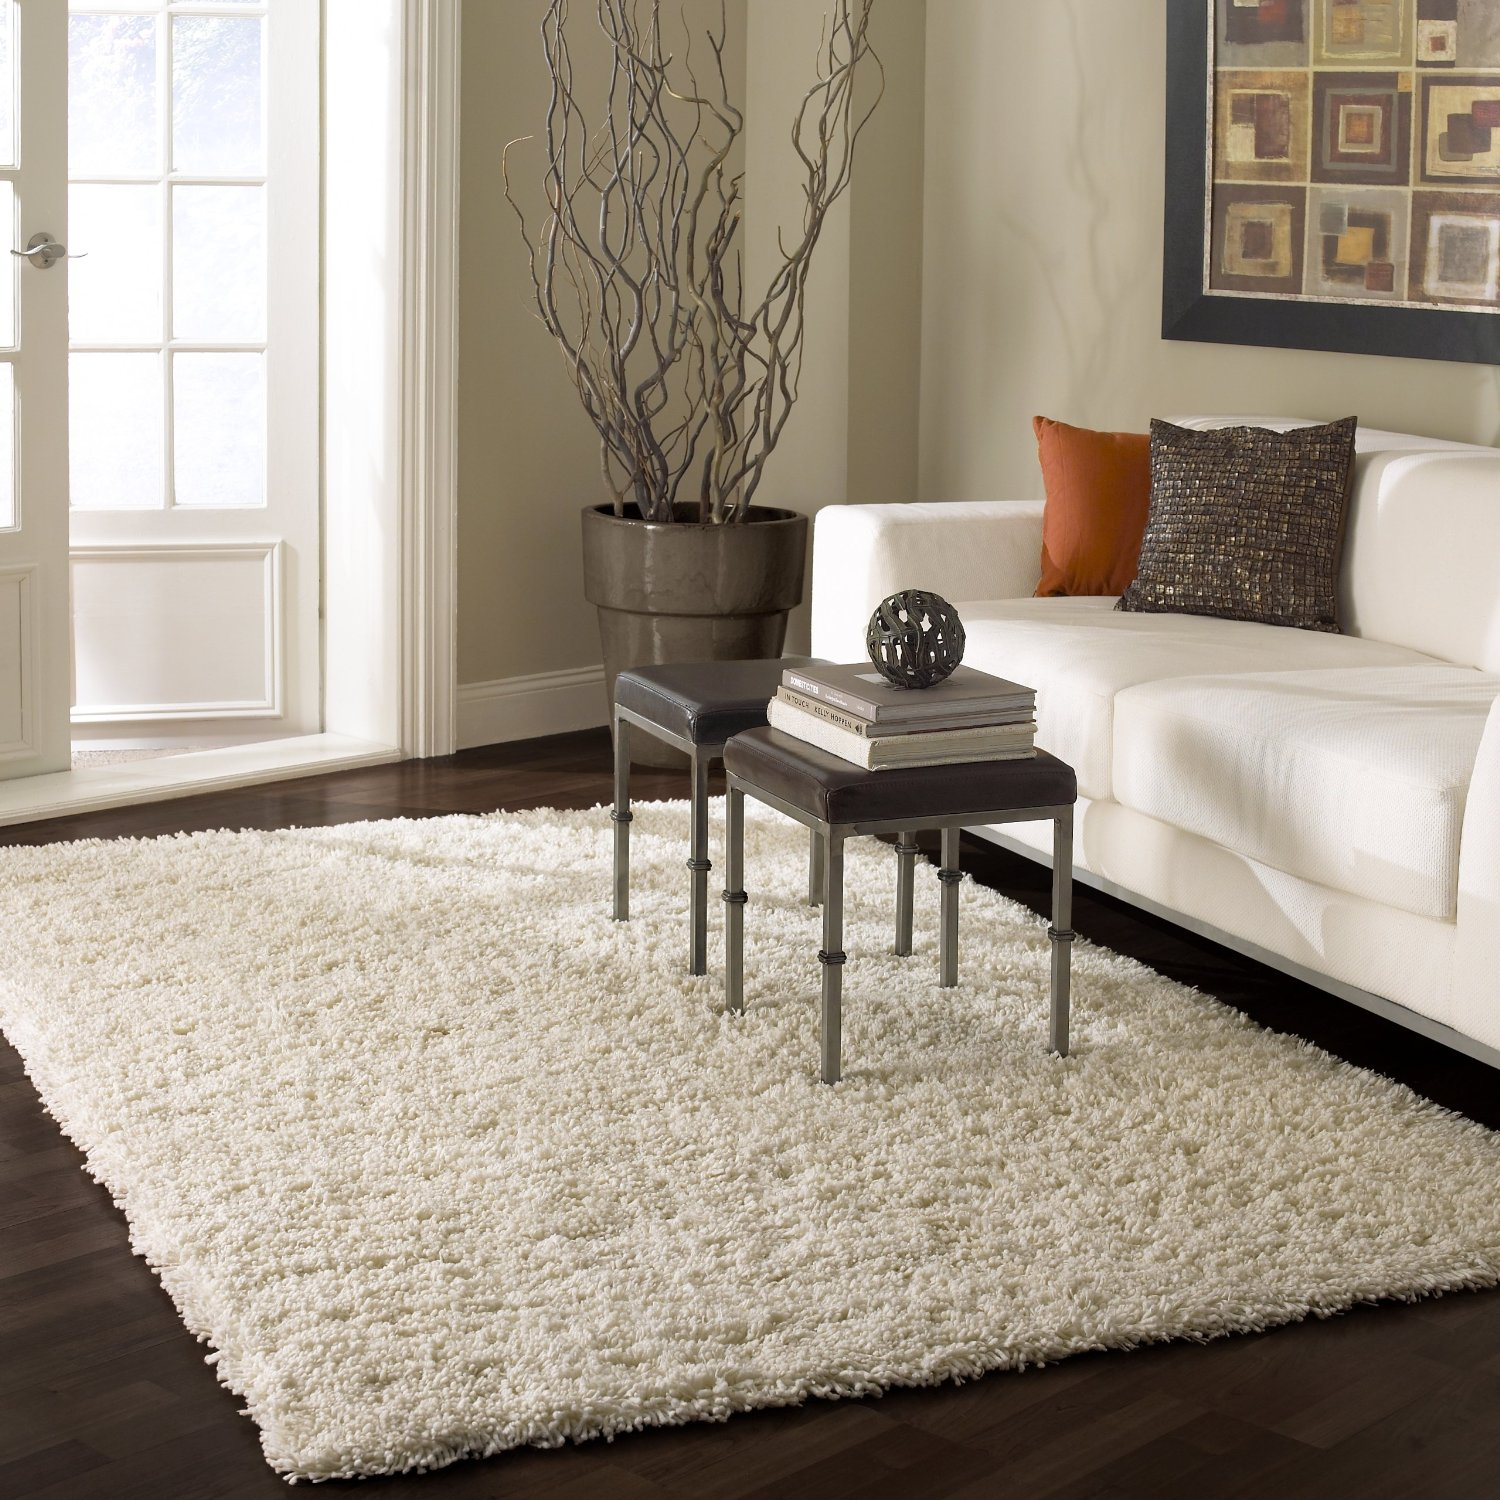 Beautiful living room rug minimalist ideas midcityeast for Living room rugs 8 by 10